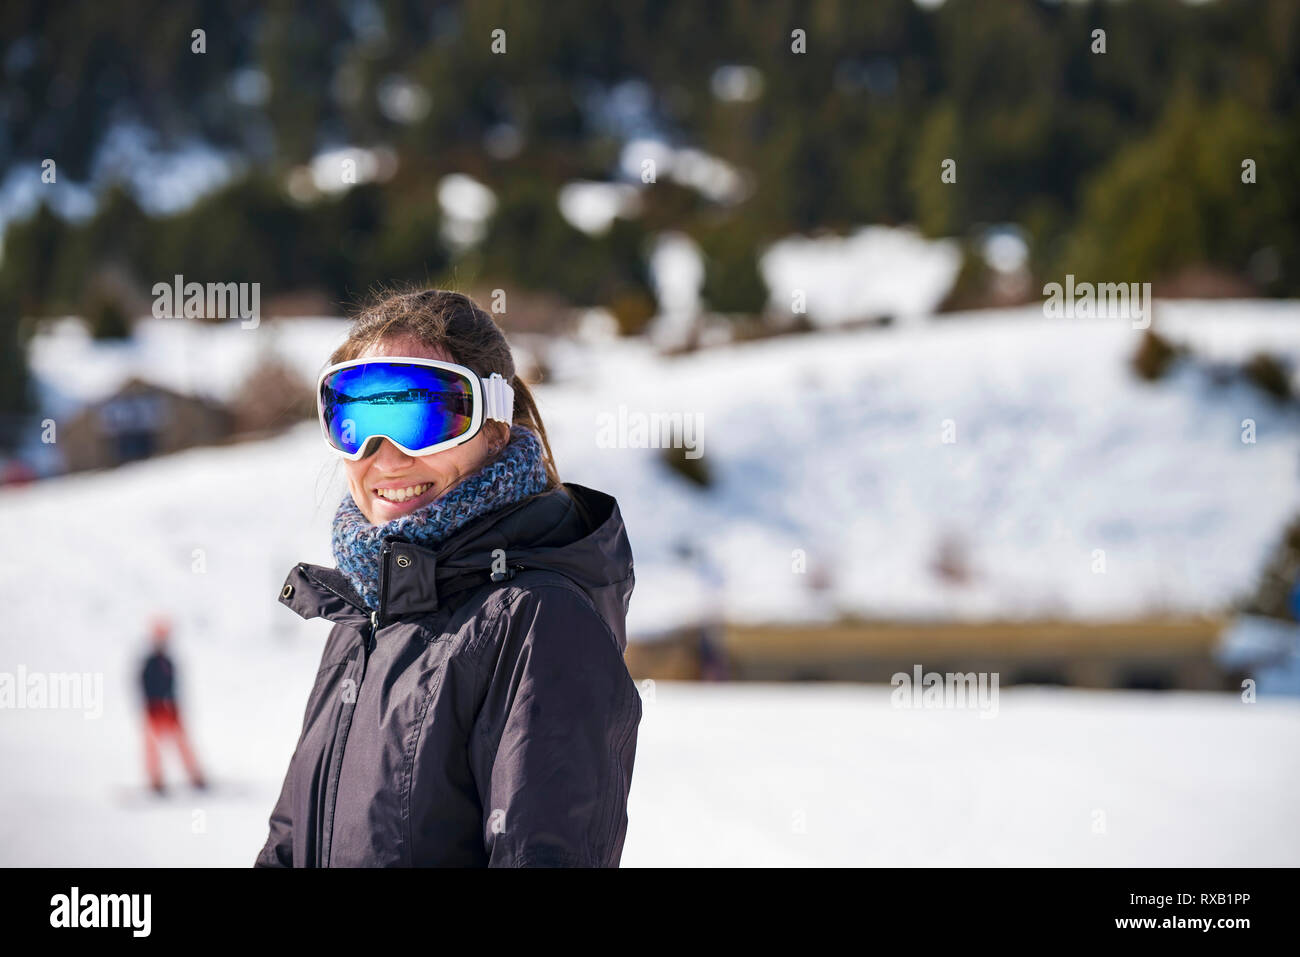 Portrait of smiling woman wearing ski goggles while standing on snow covered field - Stock Image